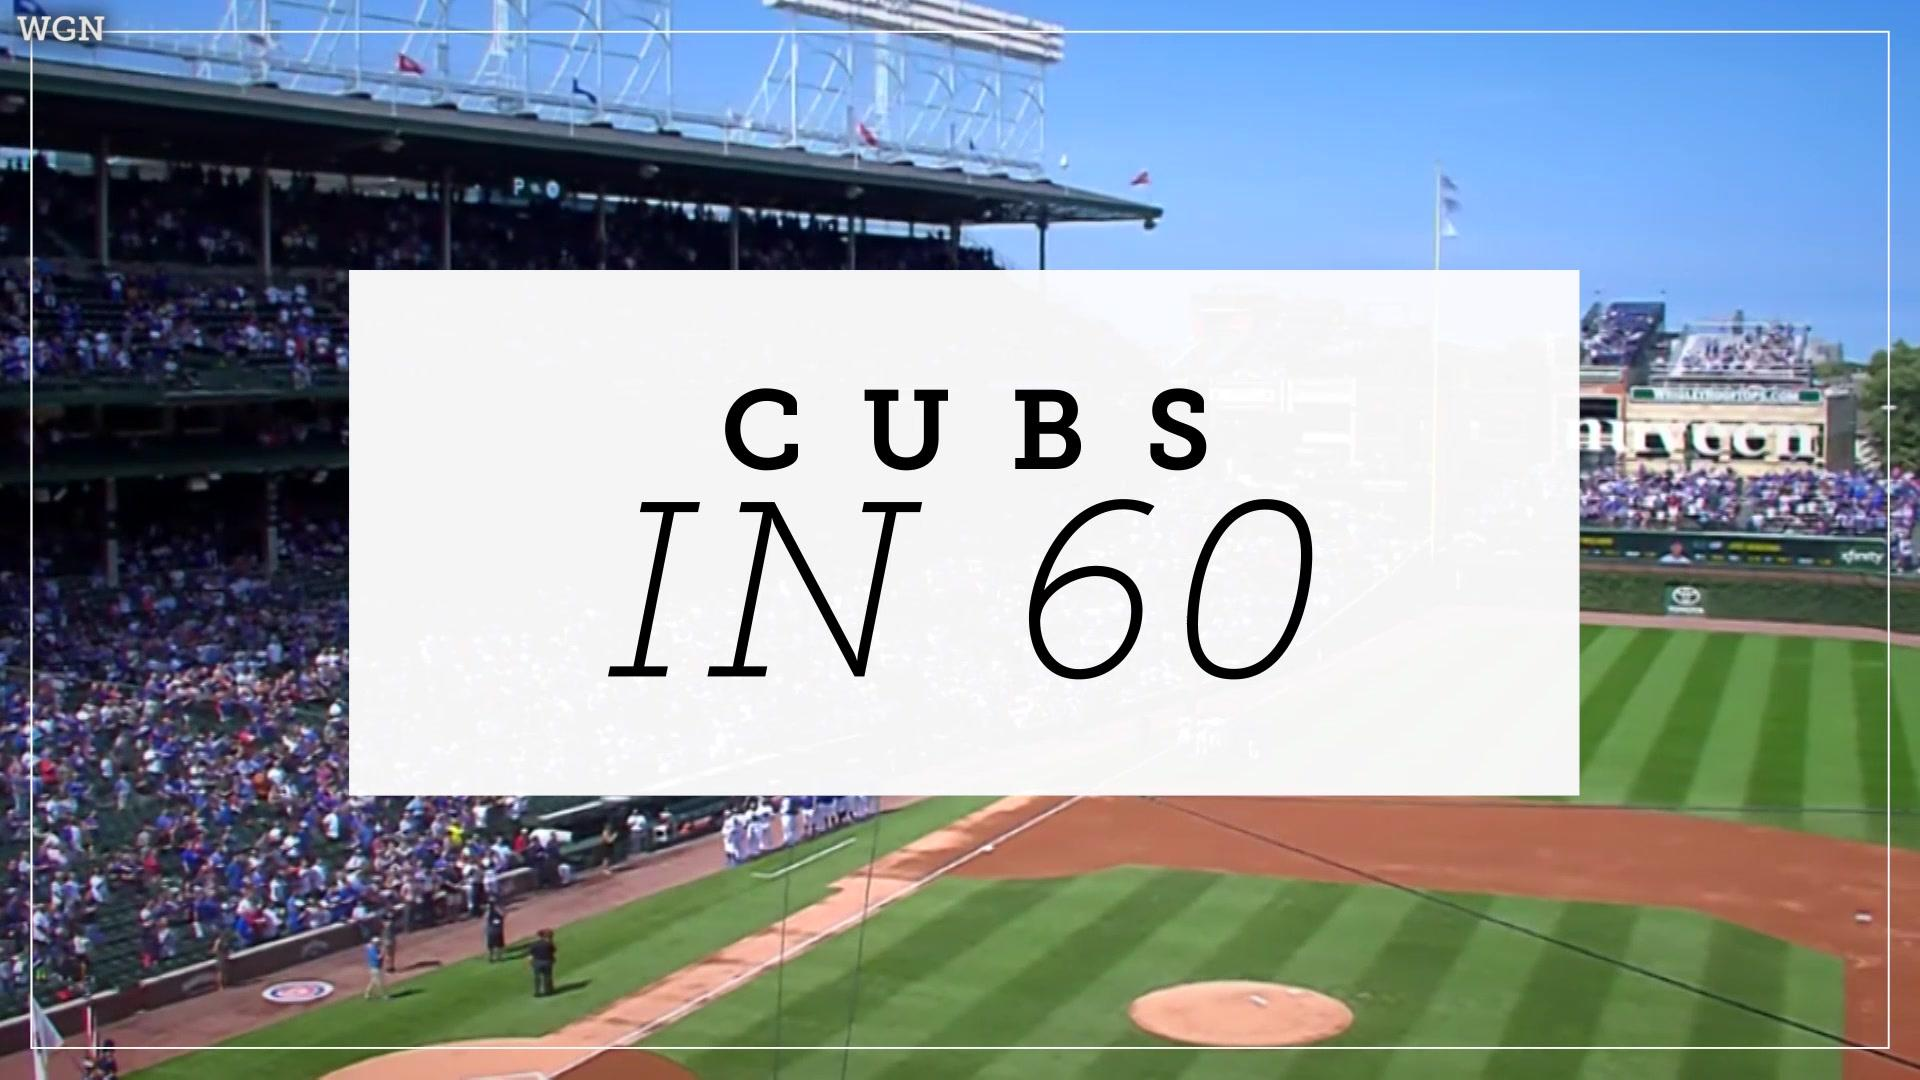 Cubs in 60: Cubs Bats Stay Hot in Game 3 vs Pirates